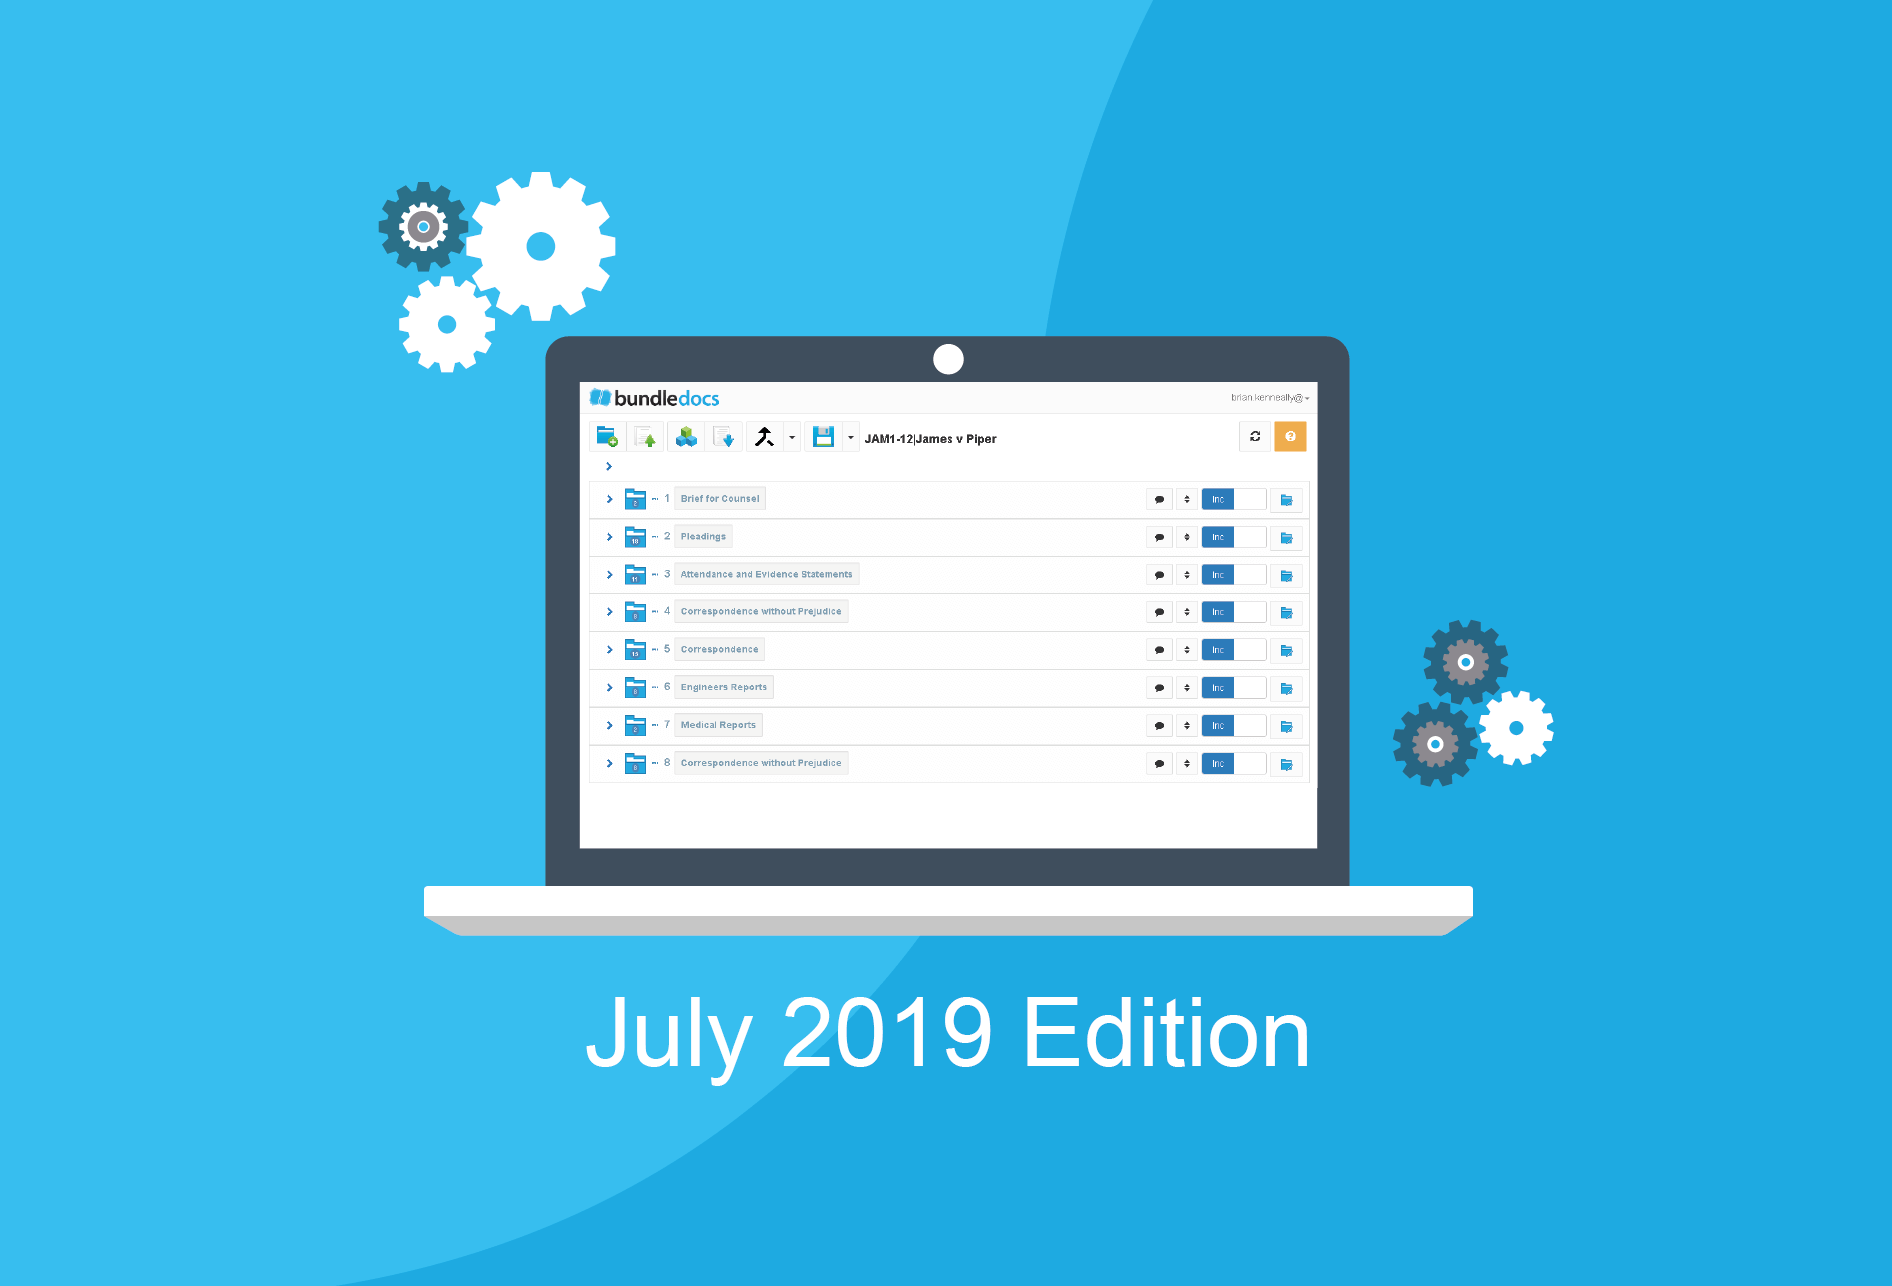 Bundledocs_Development_Feature_Release_2019_July.png